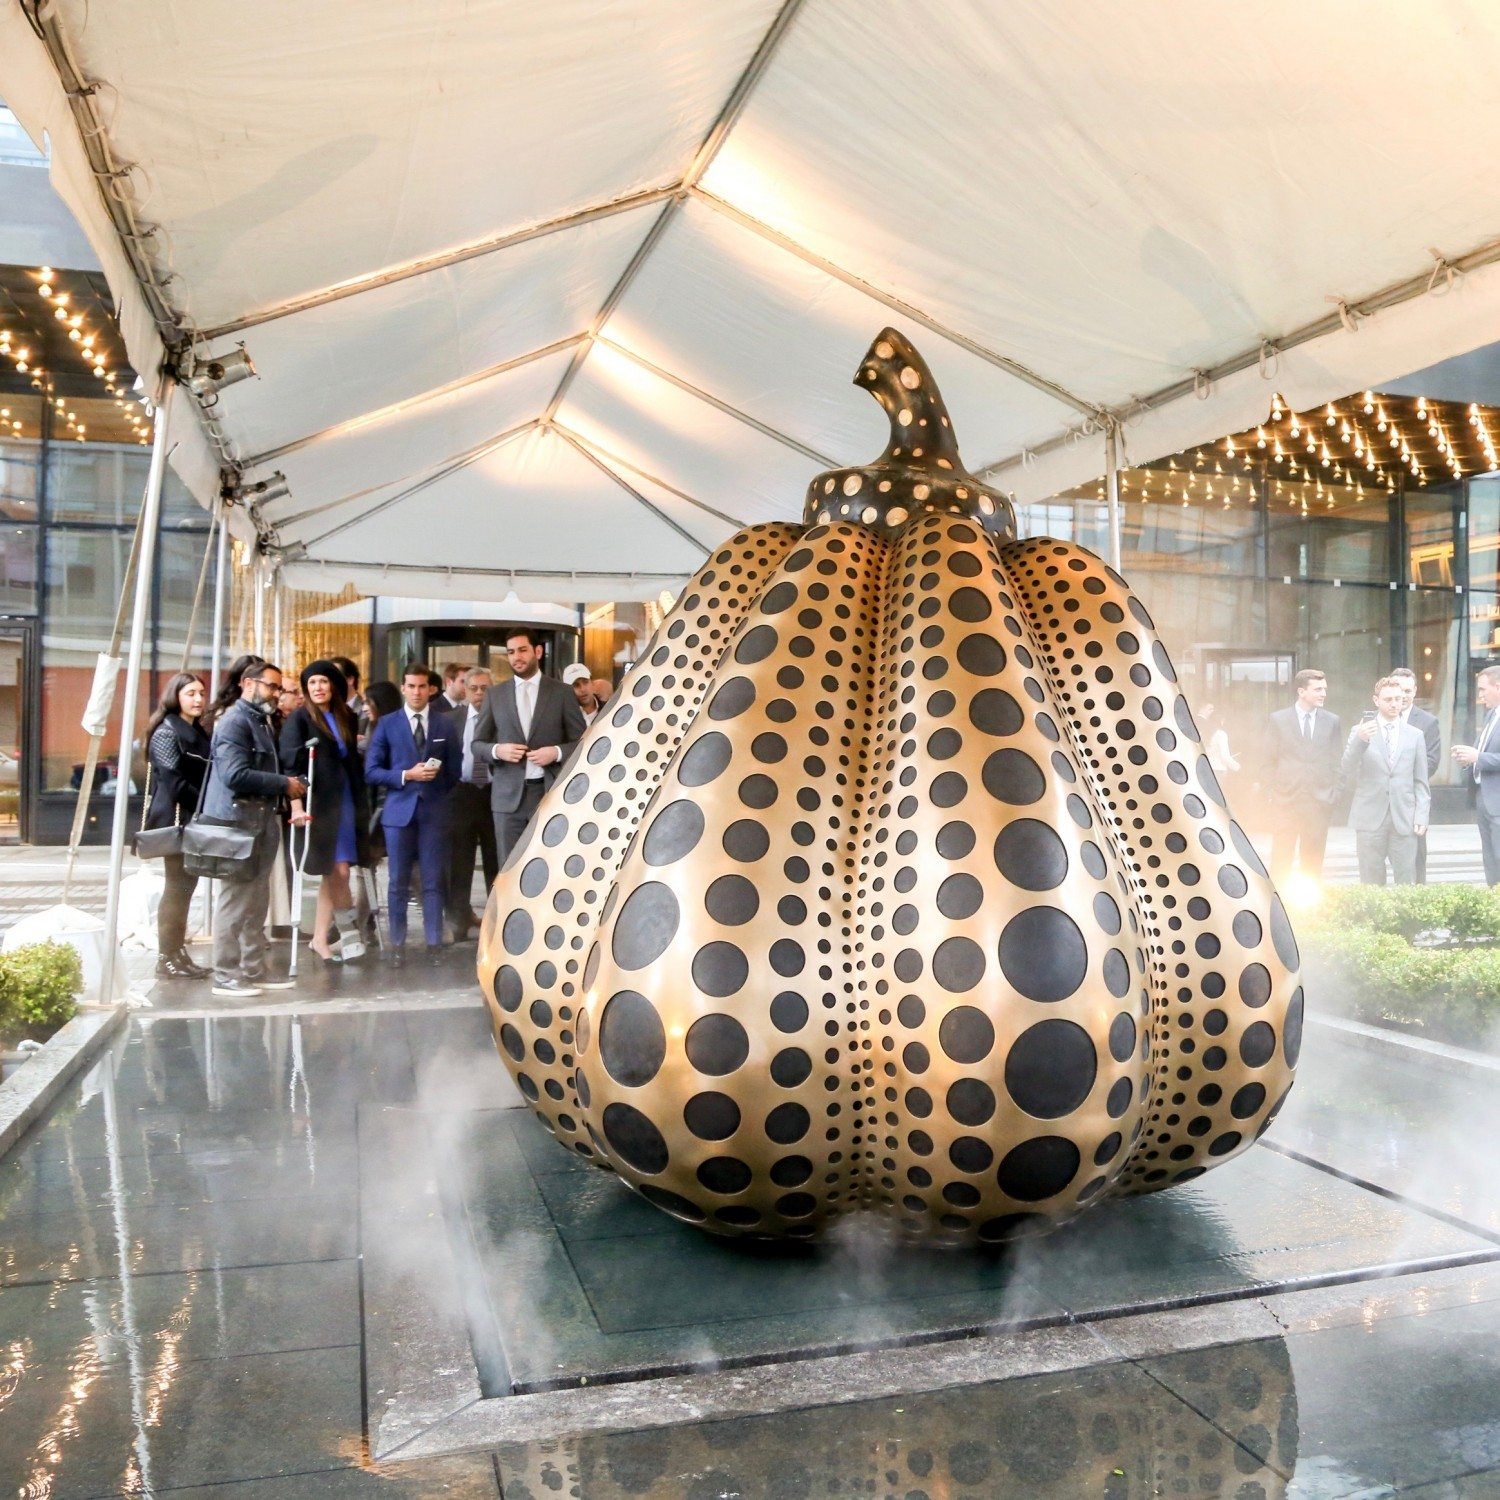 Yayoi Kusama's Artwork On Permanent Display at Sky